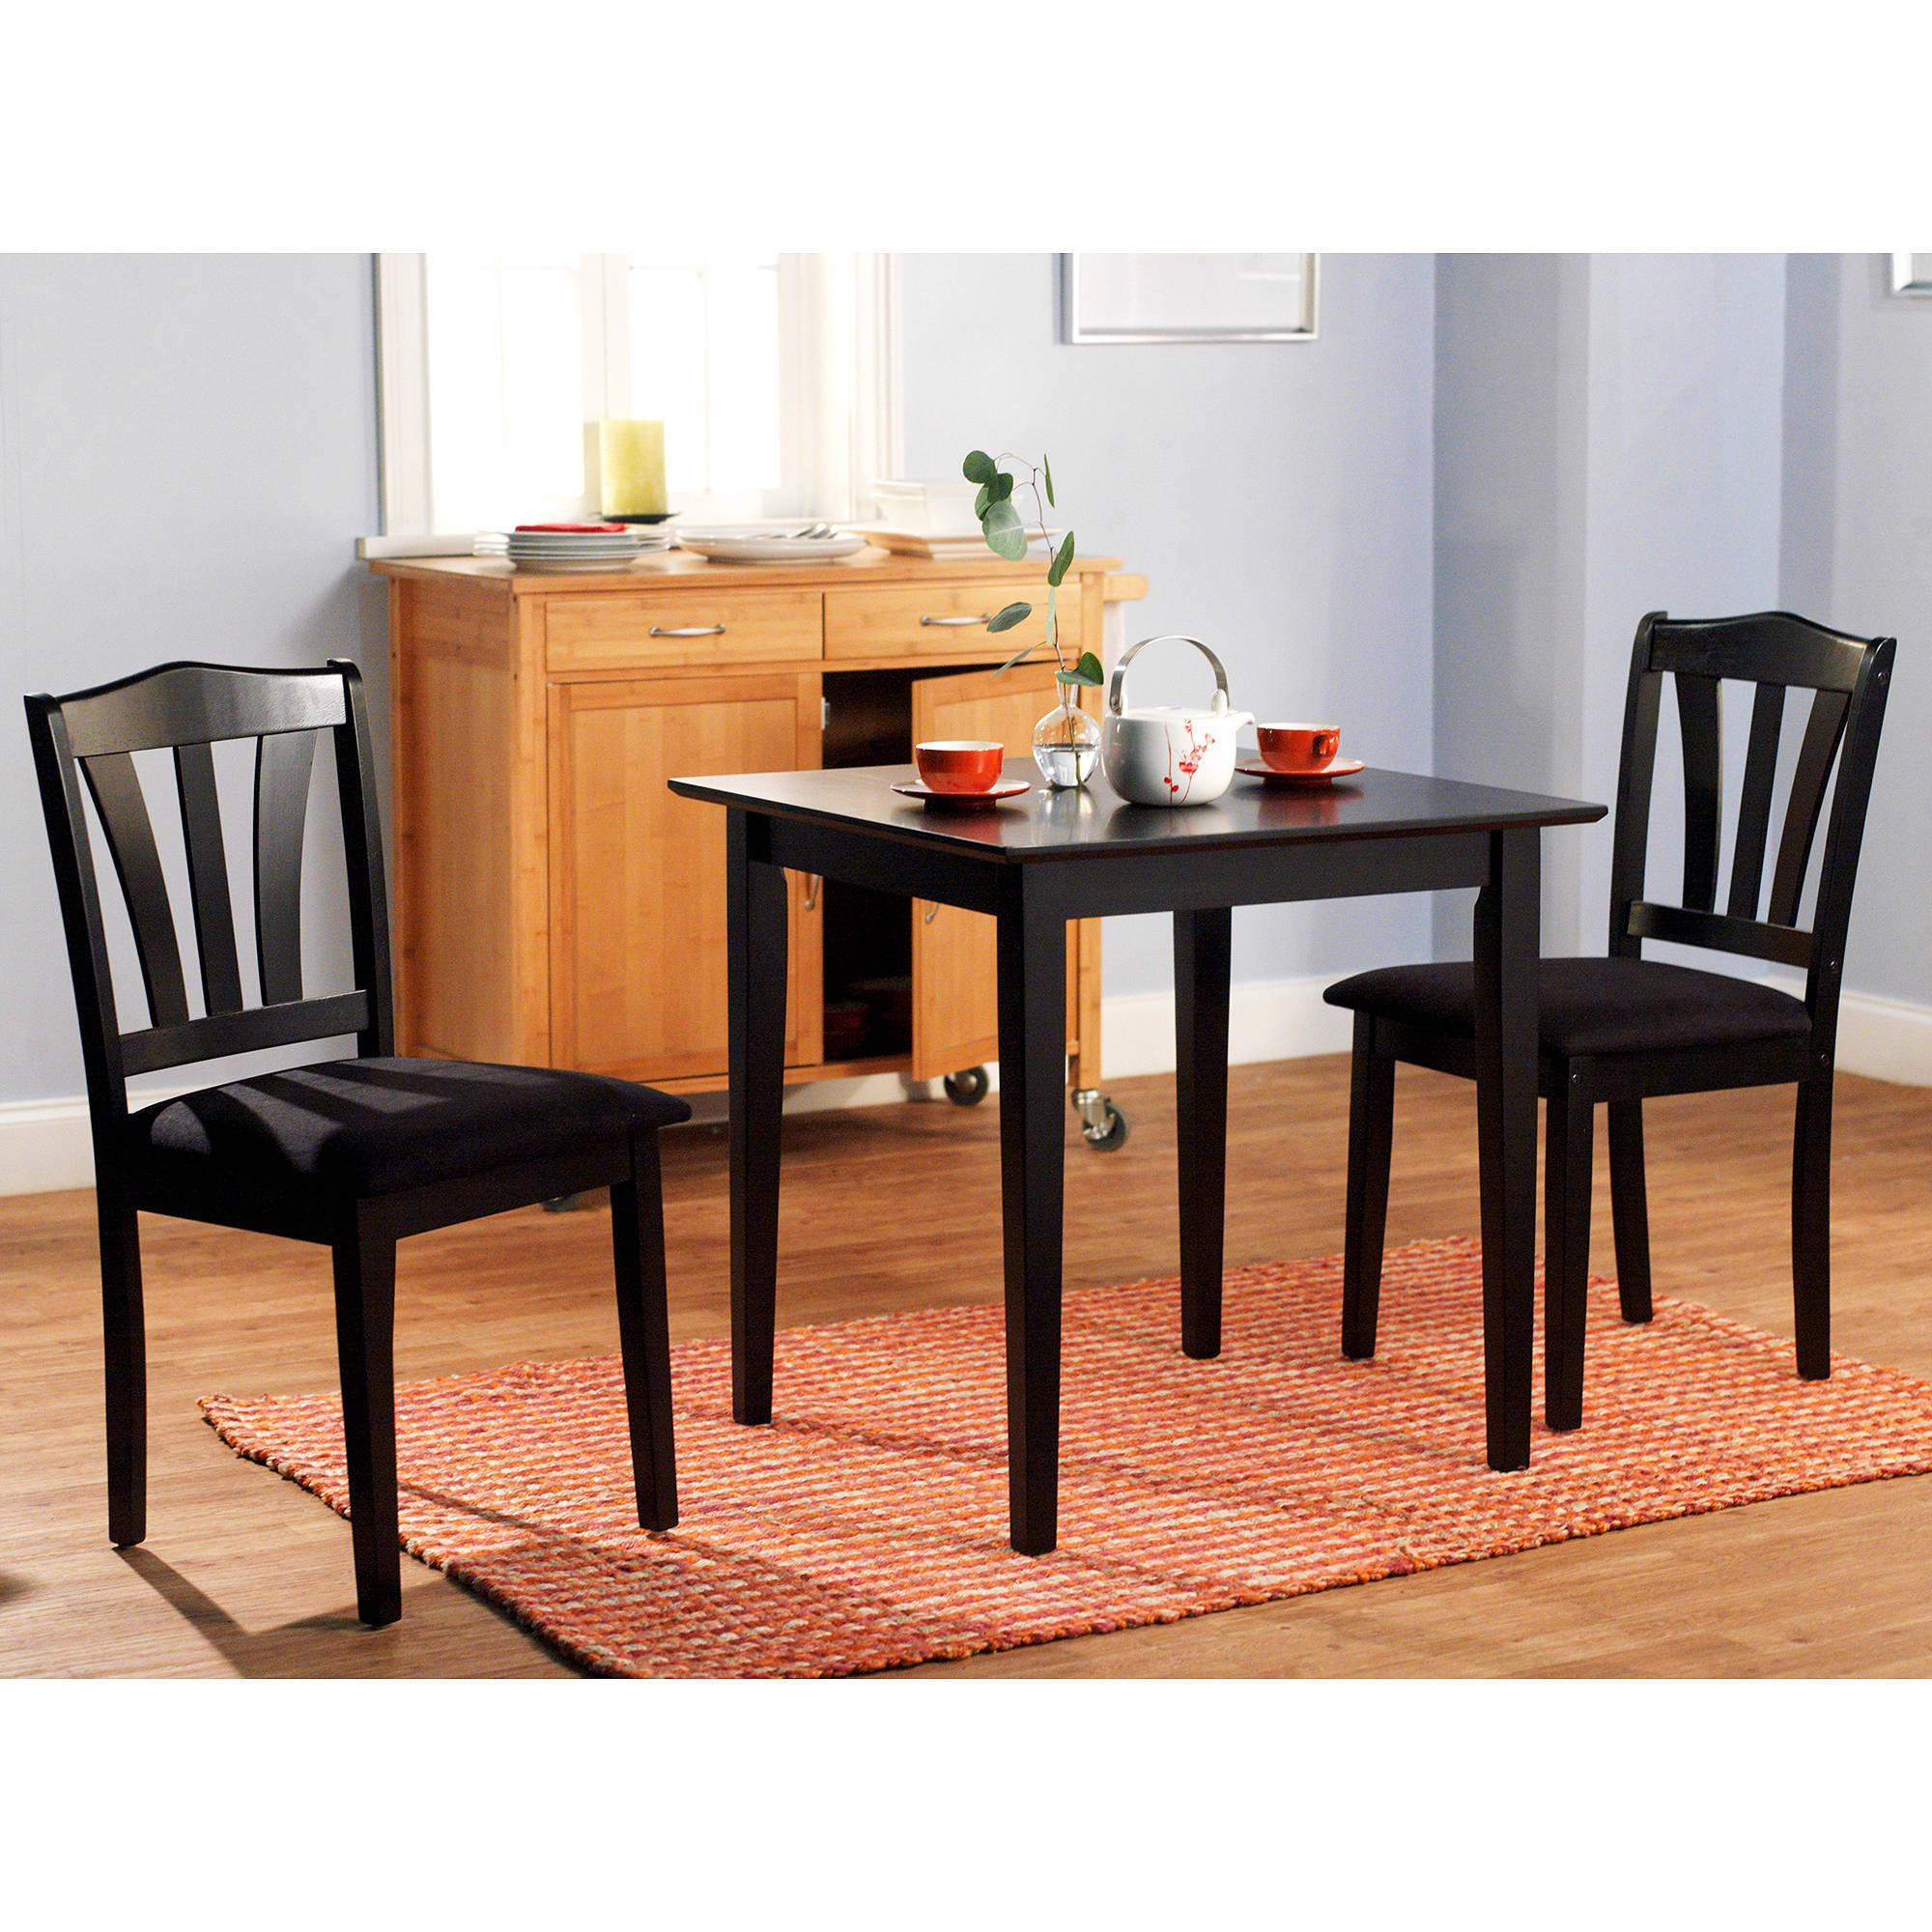 Details About 3 Piece Dining Set Table 2 Chairs Kitchen Room Wood Furniture  Dinette Modern New Regarding Trendy 3 Piece Dining Sets (Gallery 13 of 20)